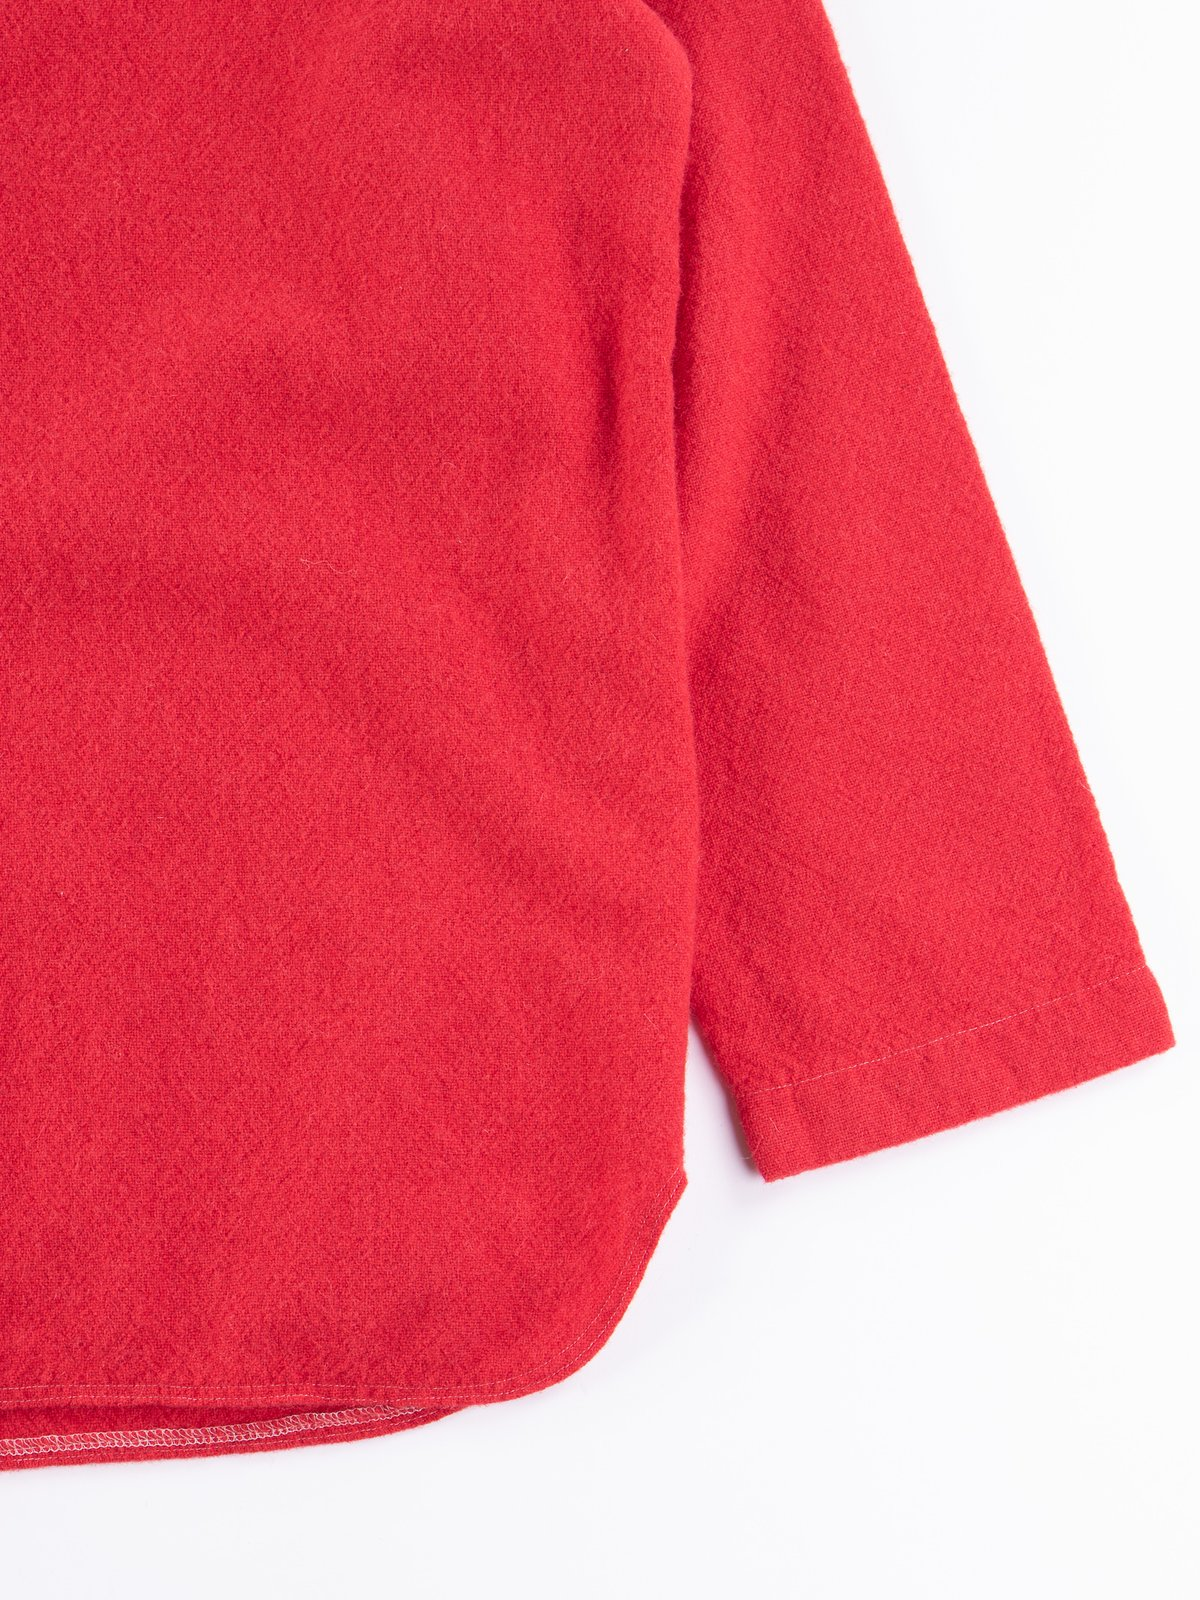 Scarlet Weavers Stock Pullover Tail Shirt - Image 4